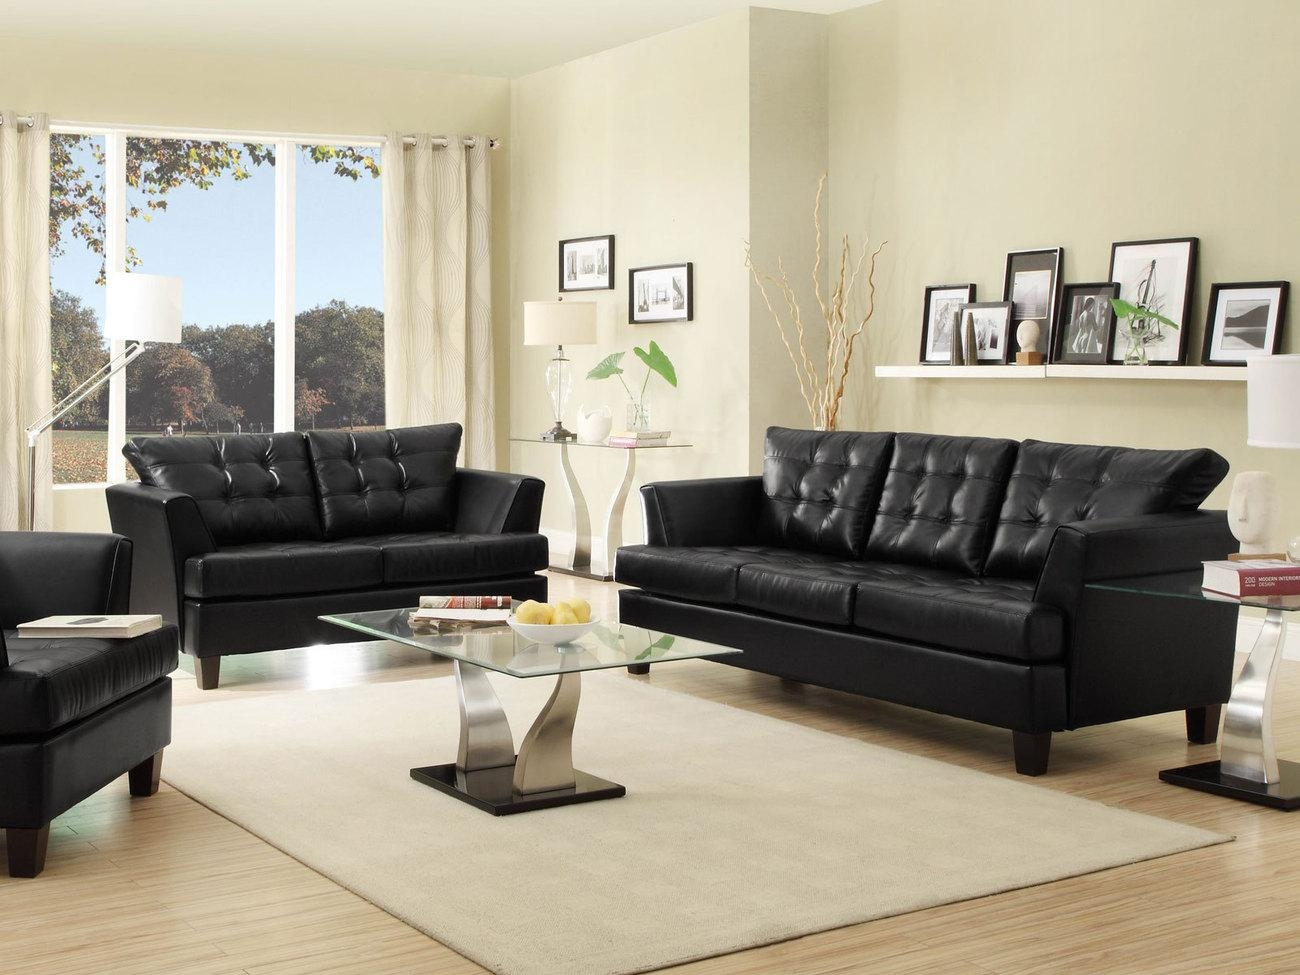 Furniture: Contemporary Couches And Contemporary Sectional Sleeper Intended For West Elm Sectional Sofa (View 18 of 20)